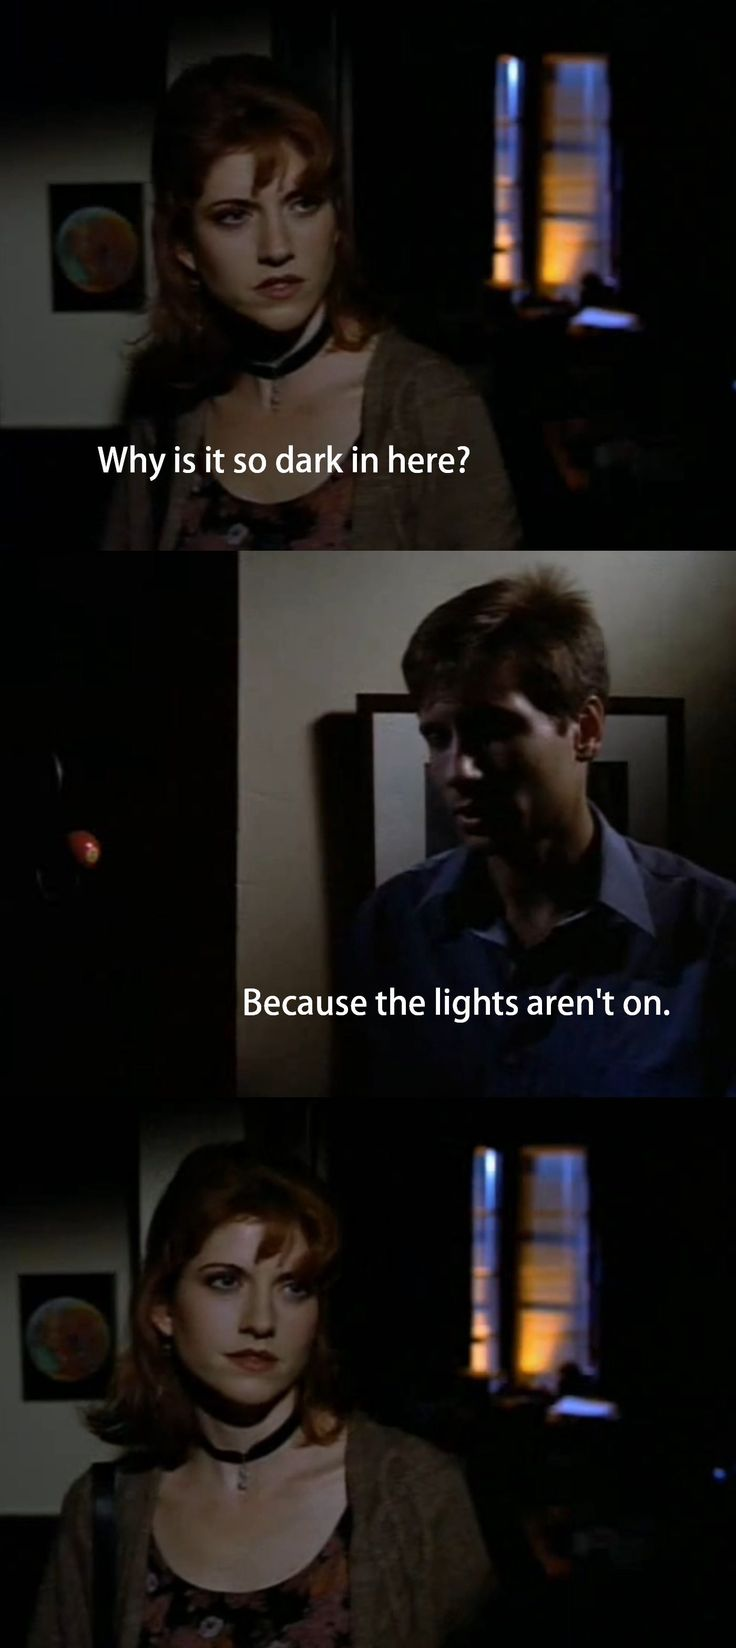 Fox Mulder had all the anwers…